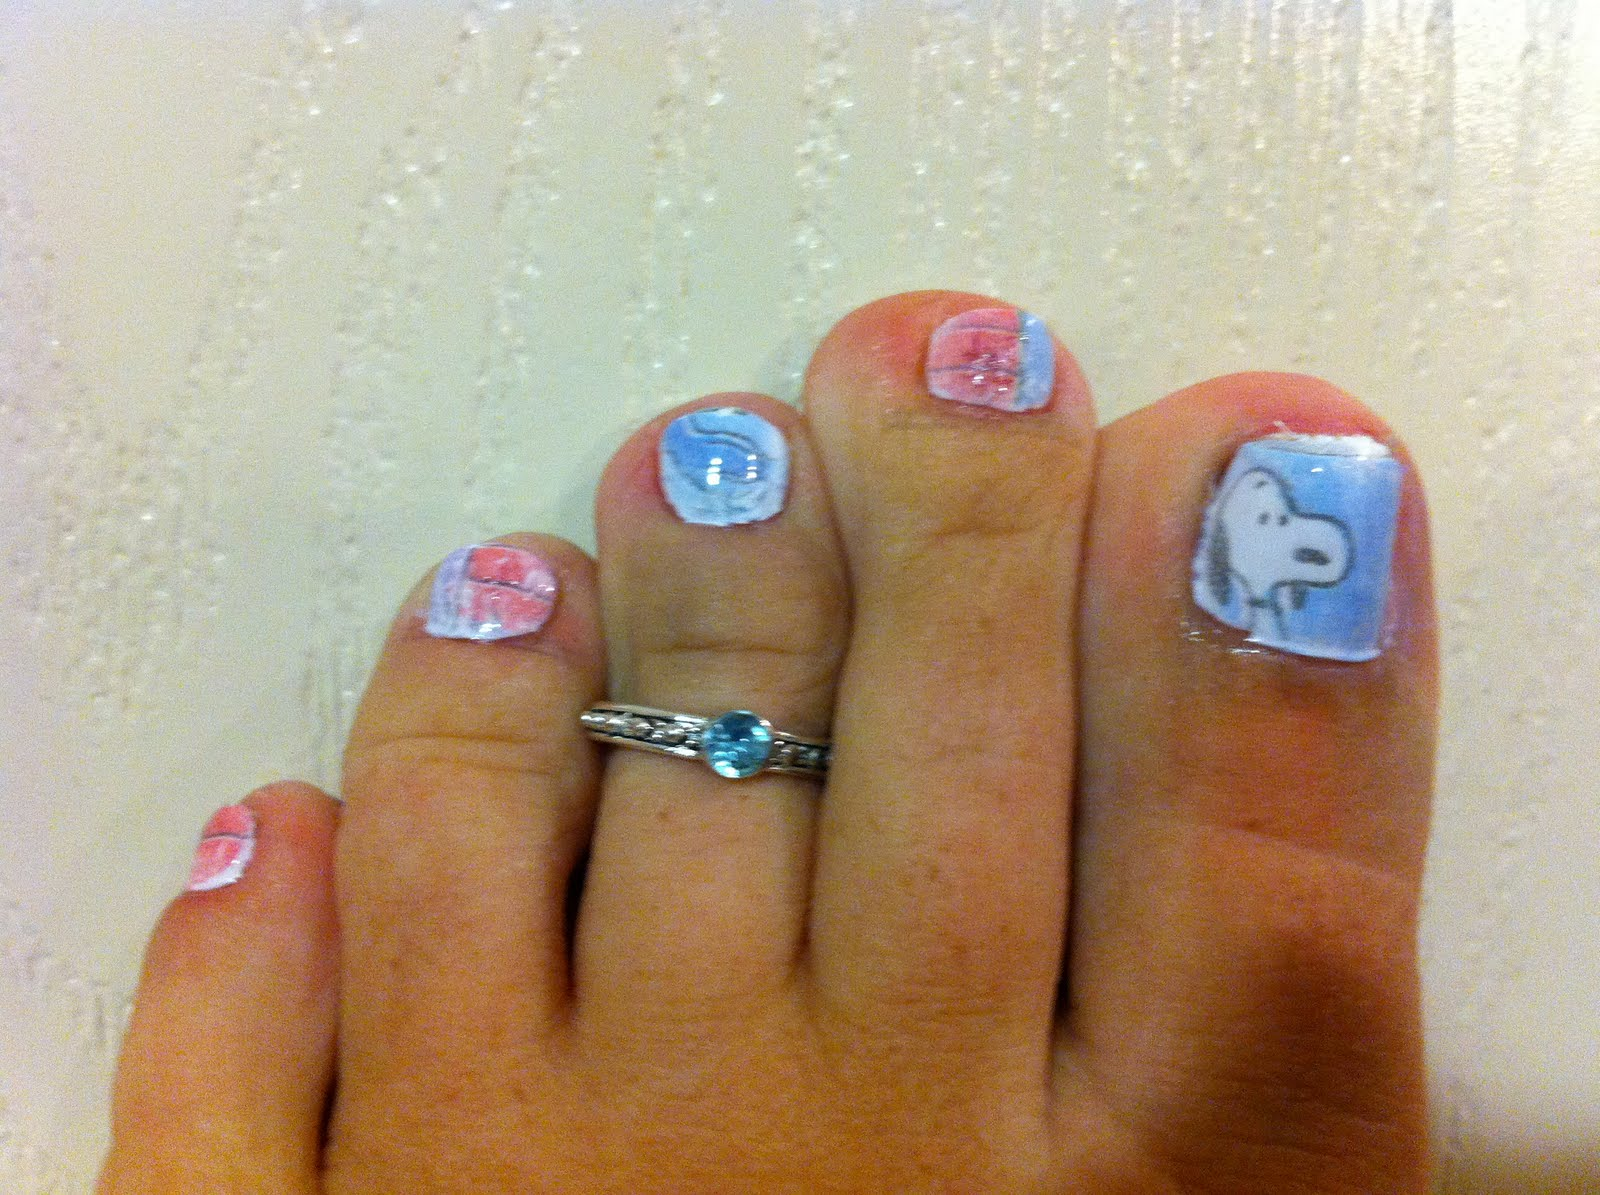 Snooo Ooo Oooo Py D My First Atempt At Comic Strip Nails Sure They Are A Little Messy But I Did Say 1st Think The Colors Came Out Great